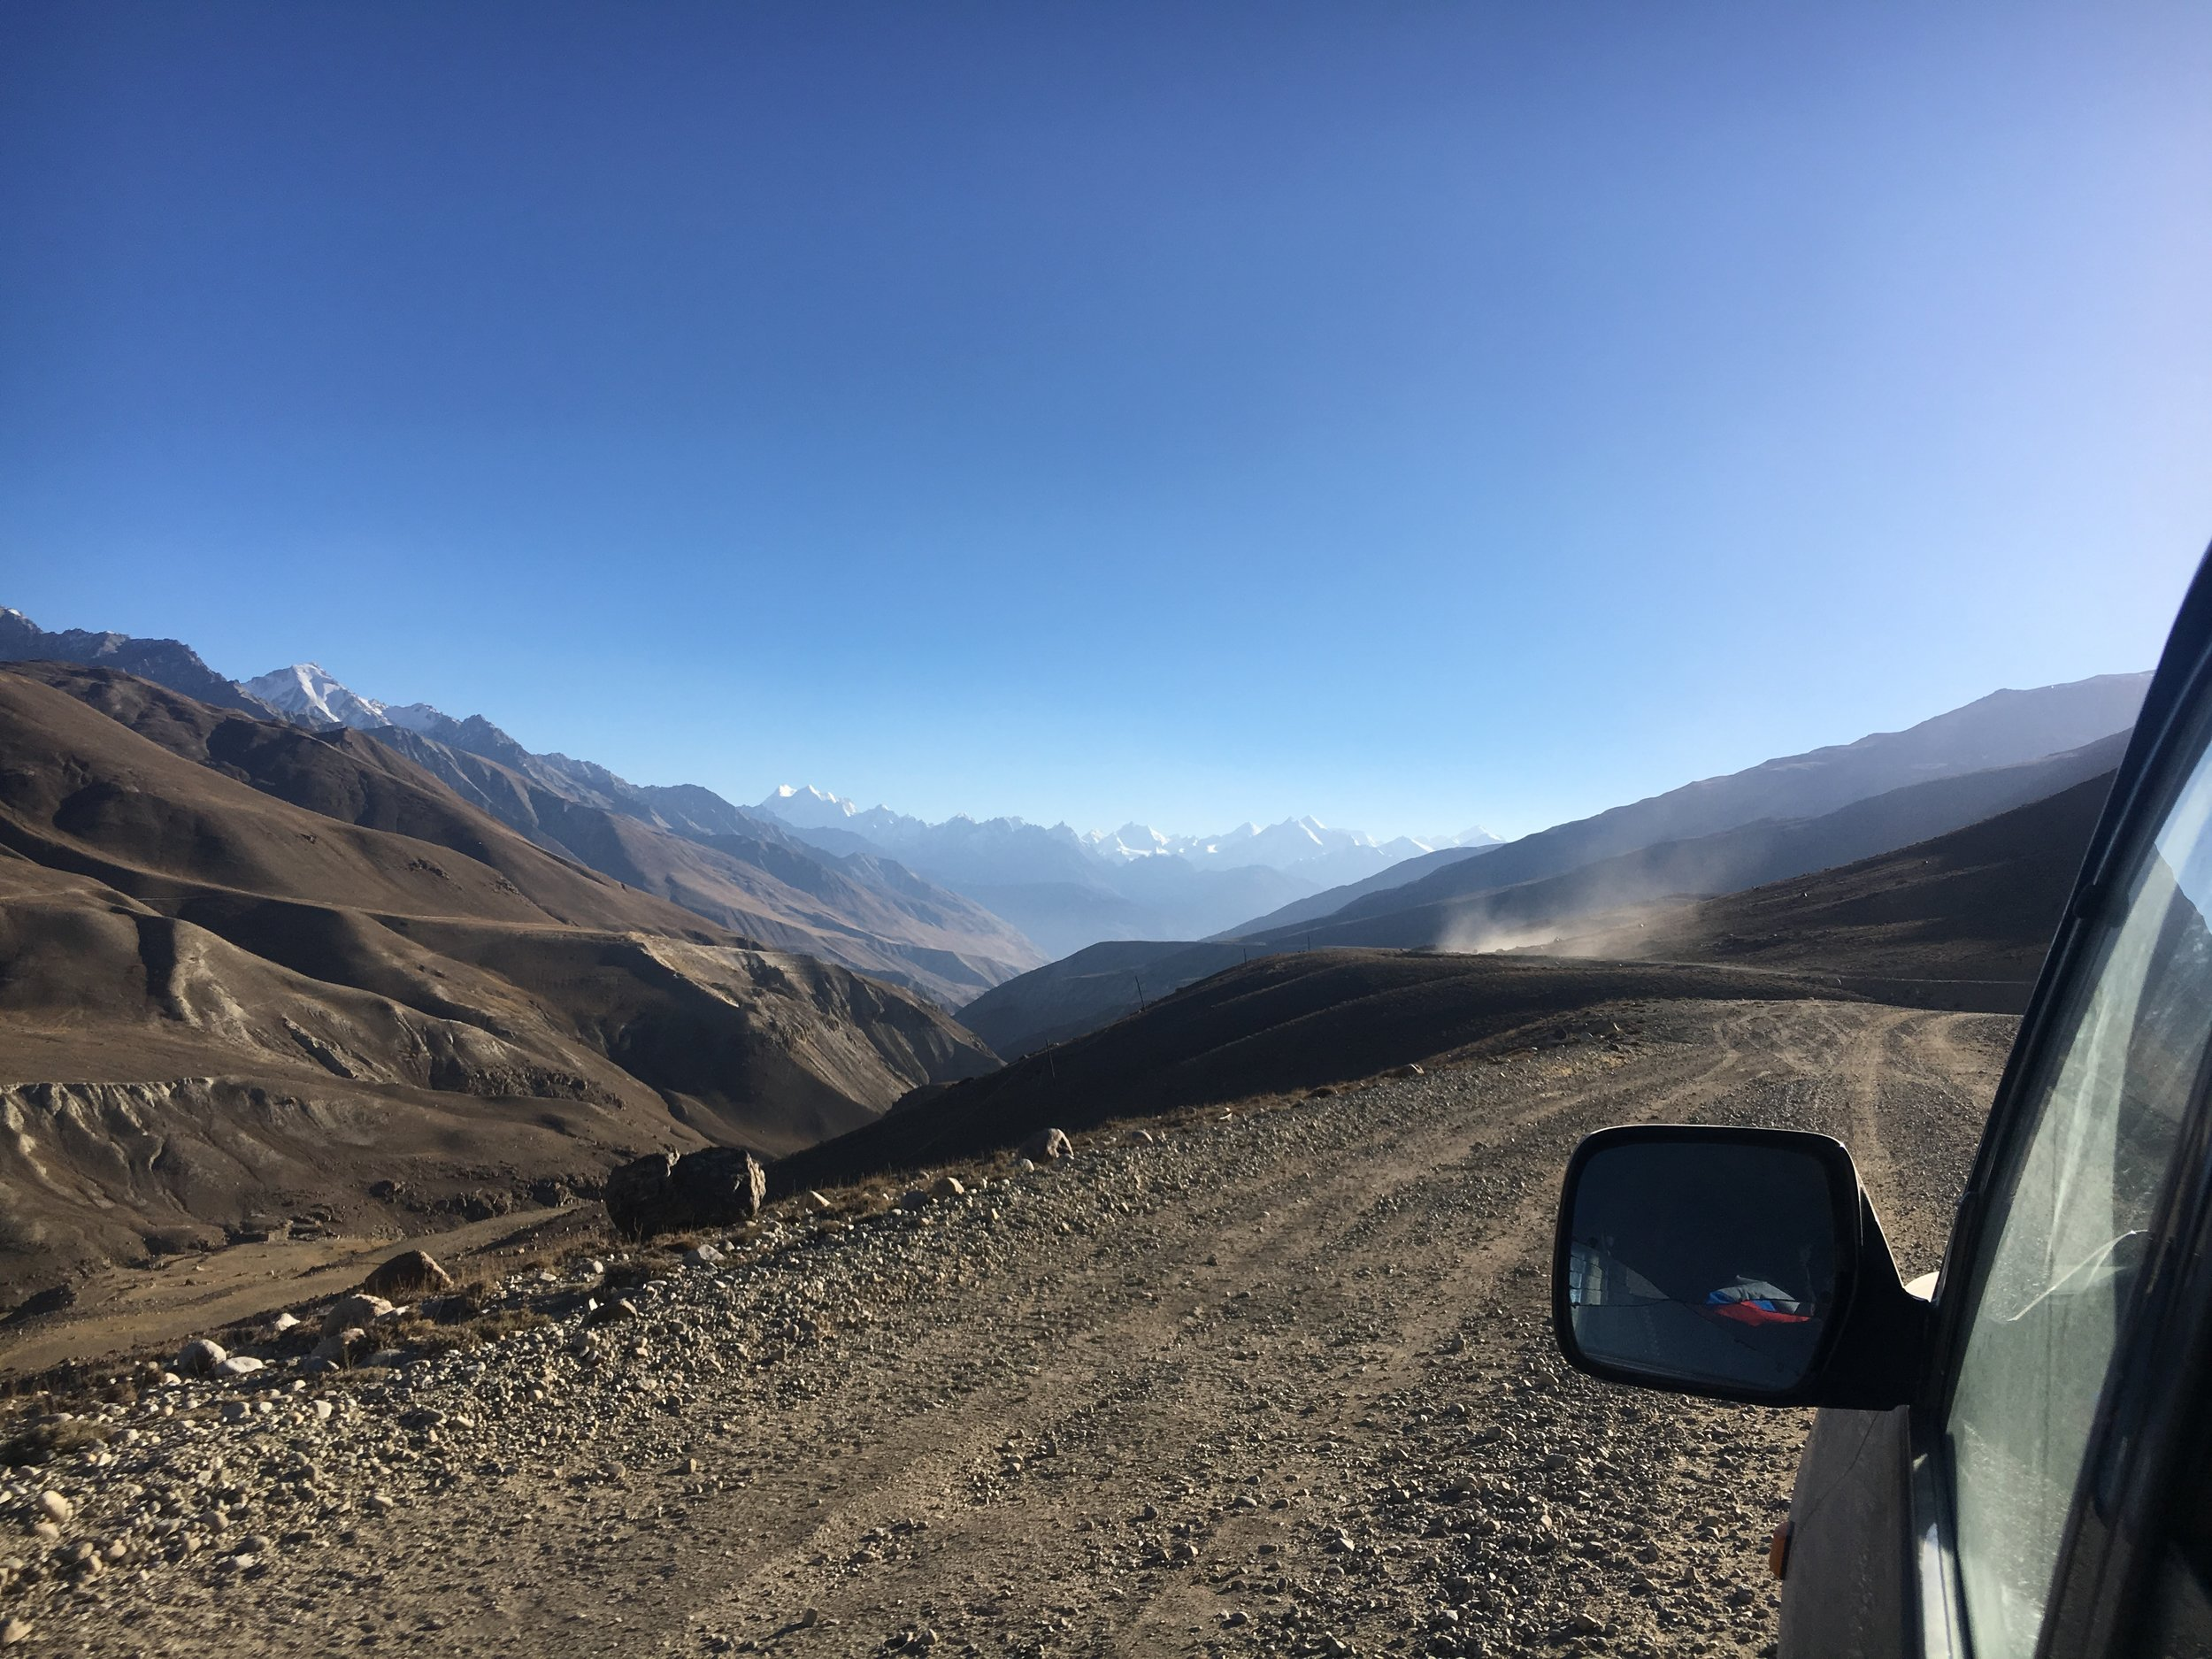 PECTA driver somewhere between Khargush Pass and Langar. Left side: Afghanistan